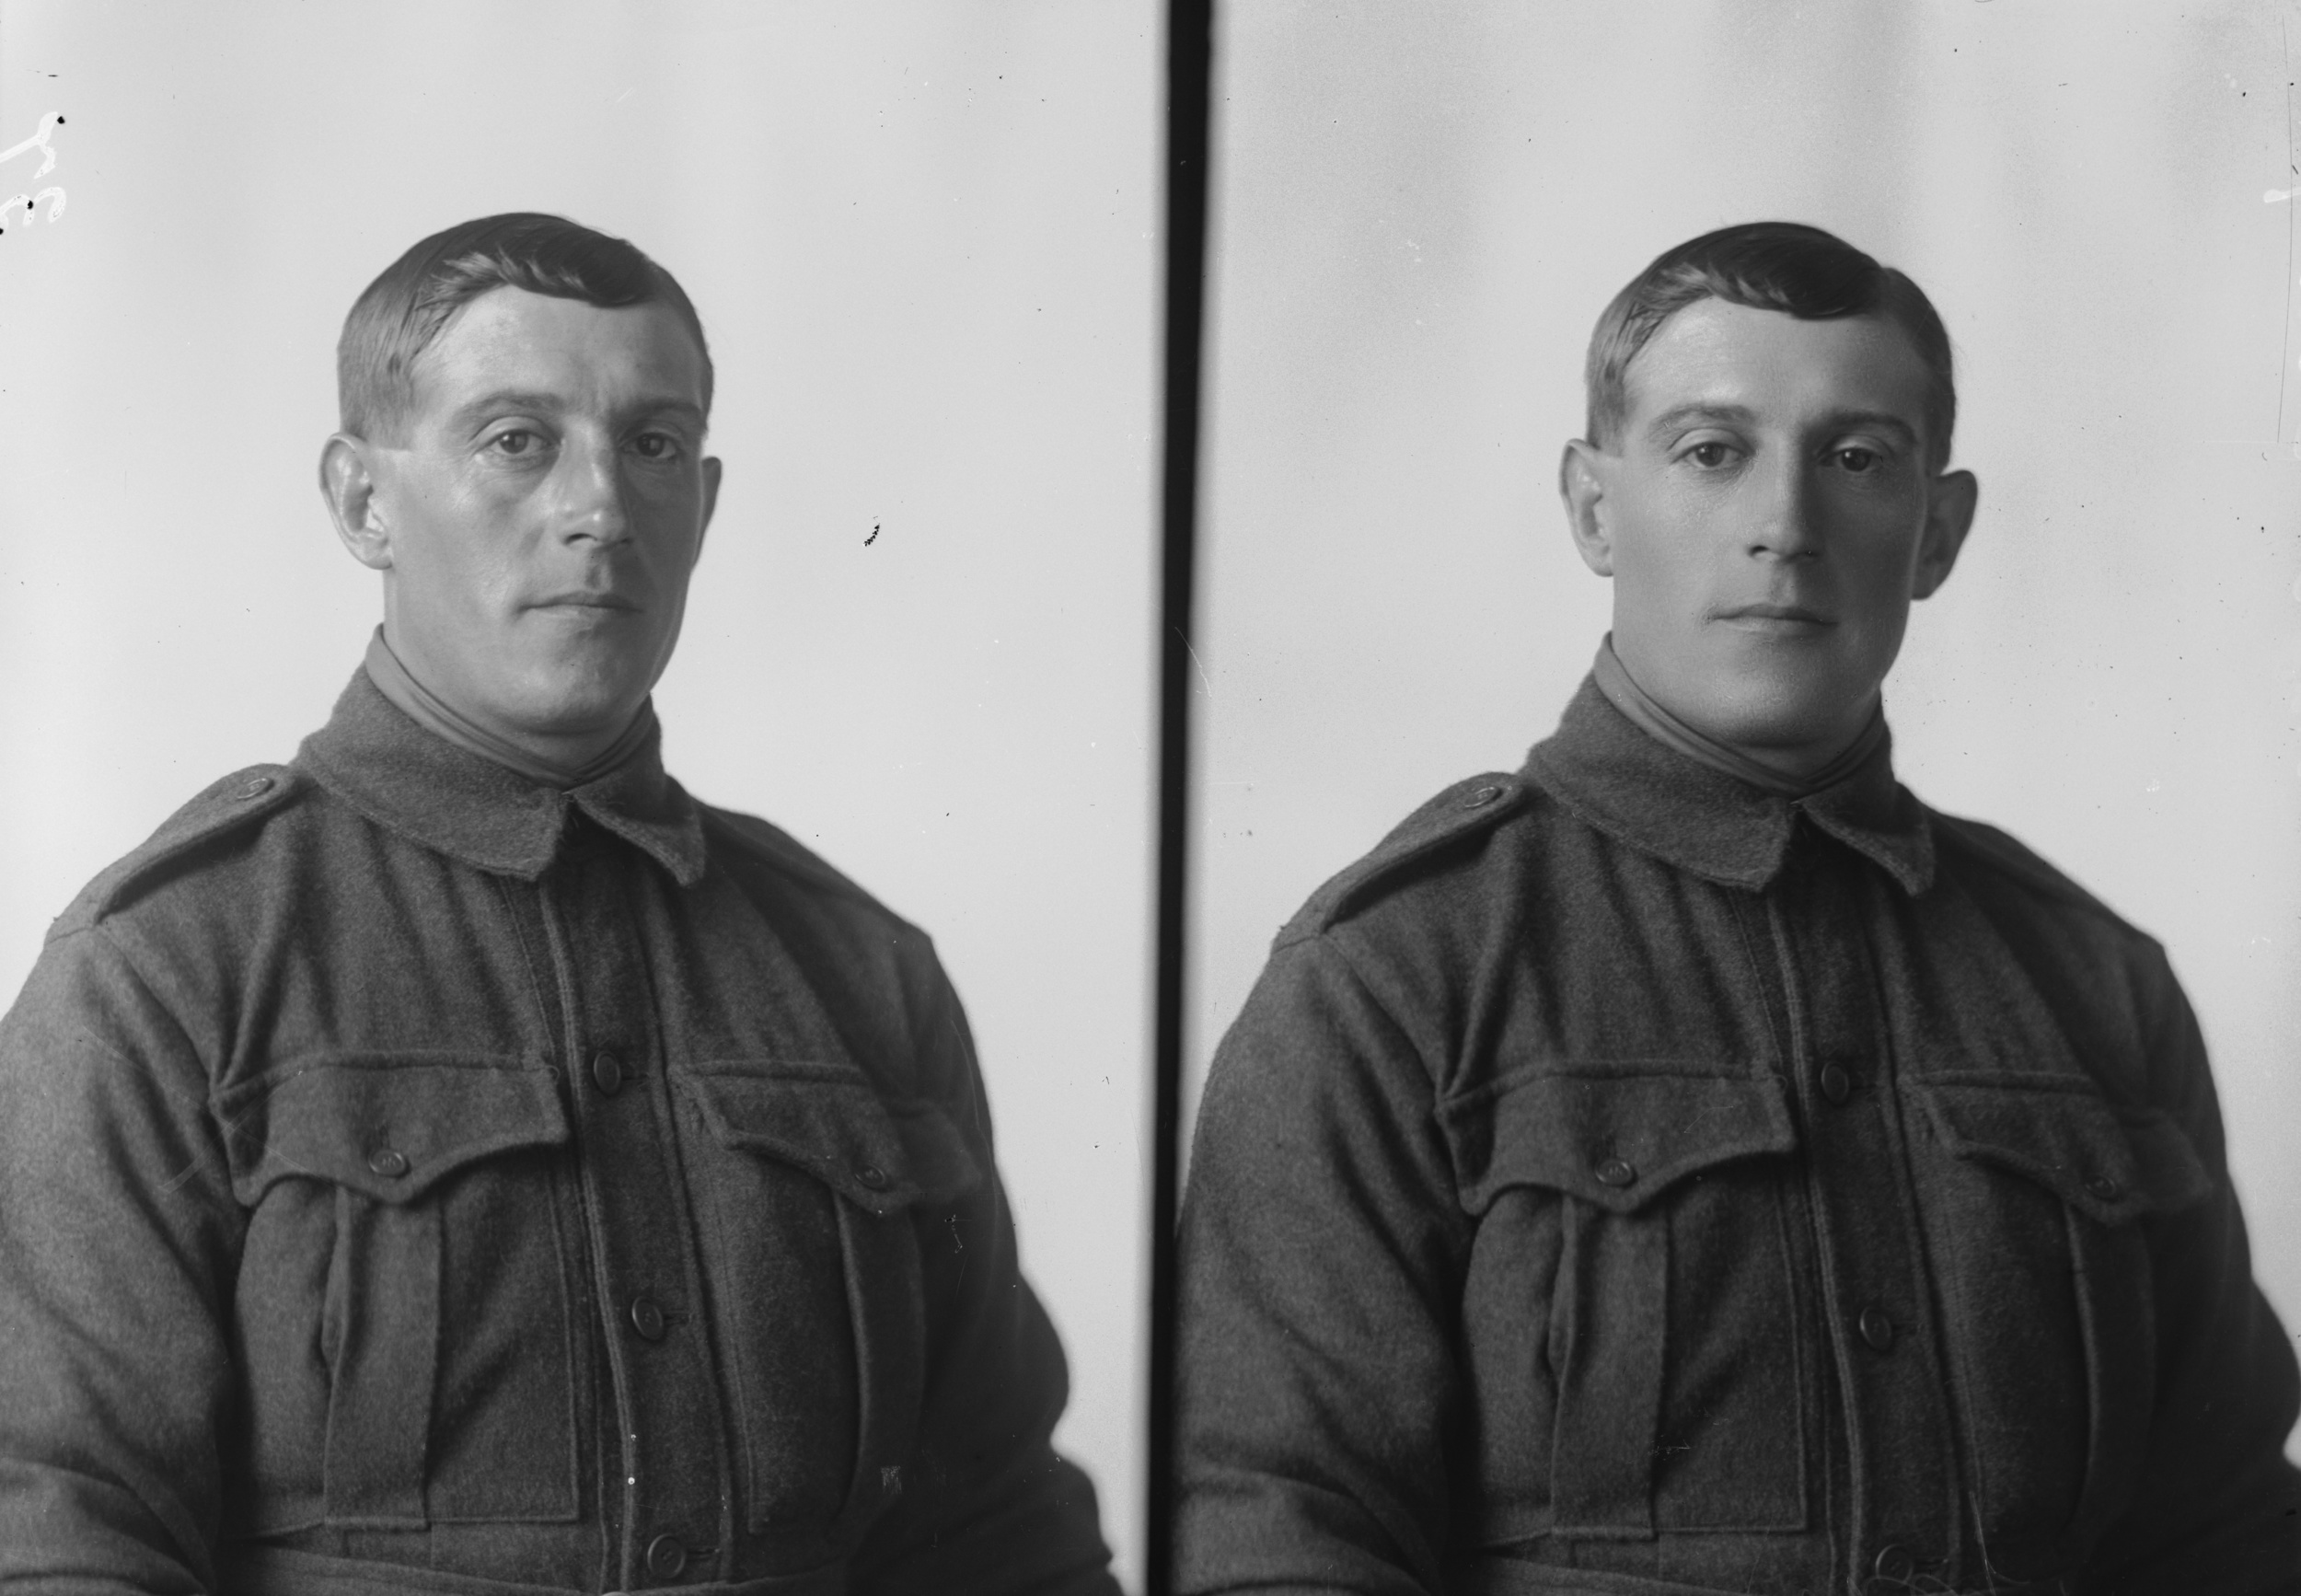 Photographed at the Dease Studio, 117 Barrack Street Perth WA Image courtesy of the State Library of Western Australia: 108699PD